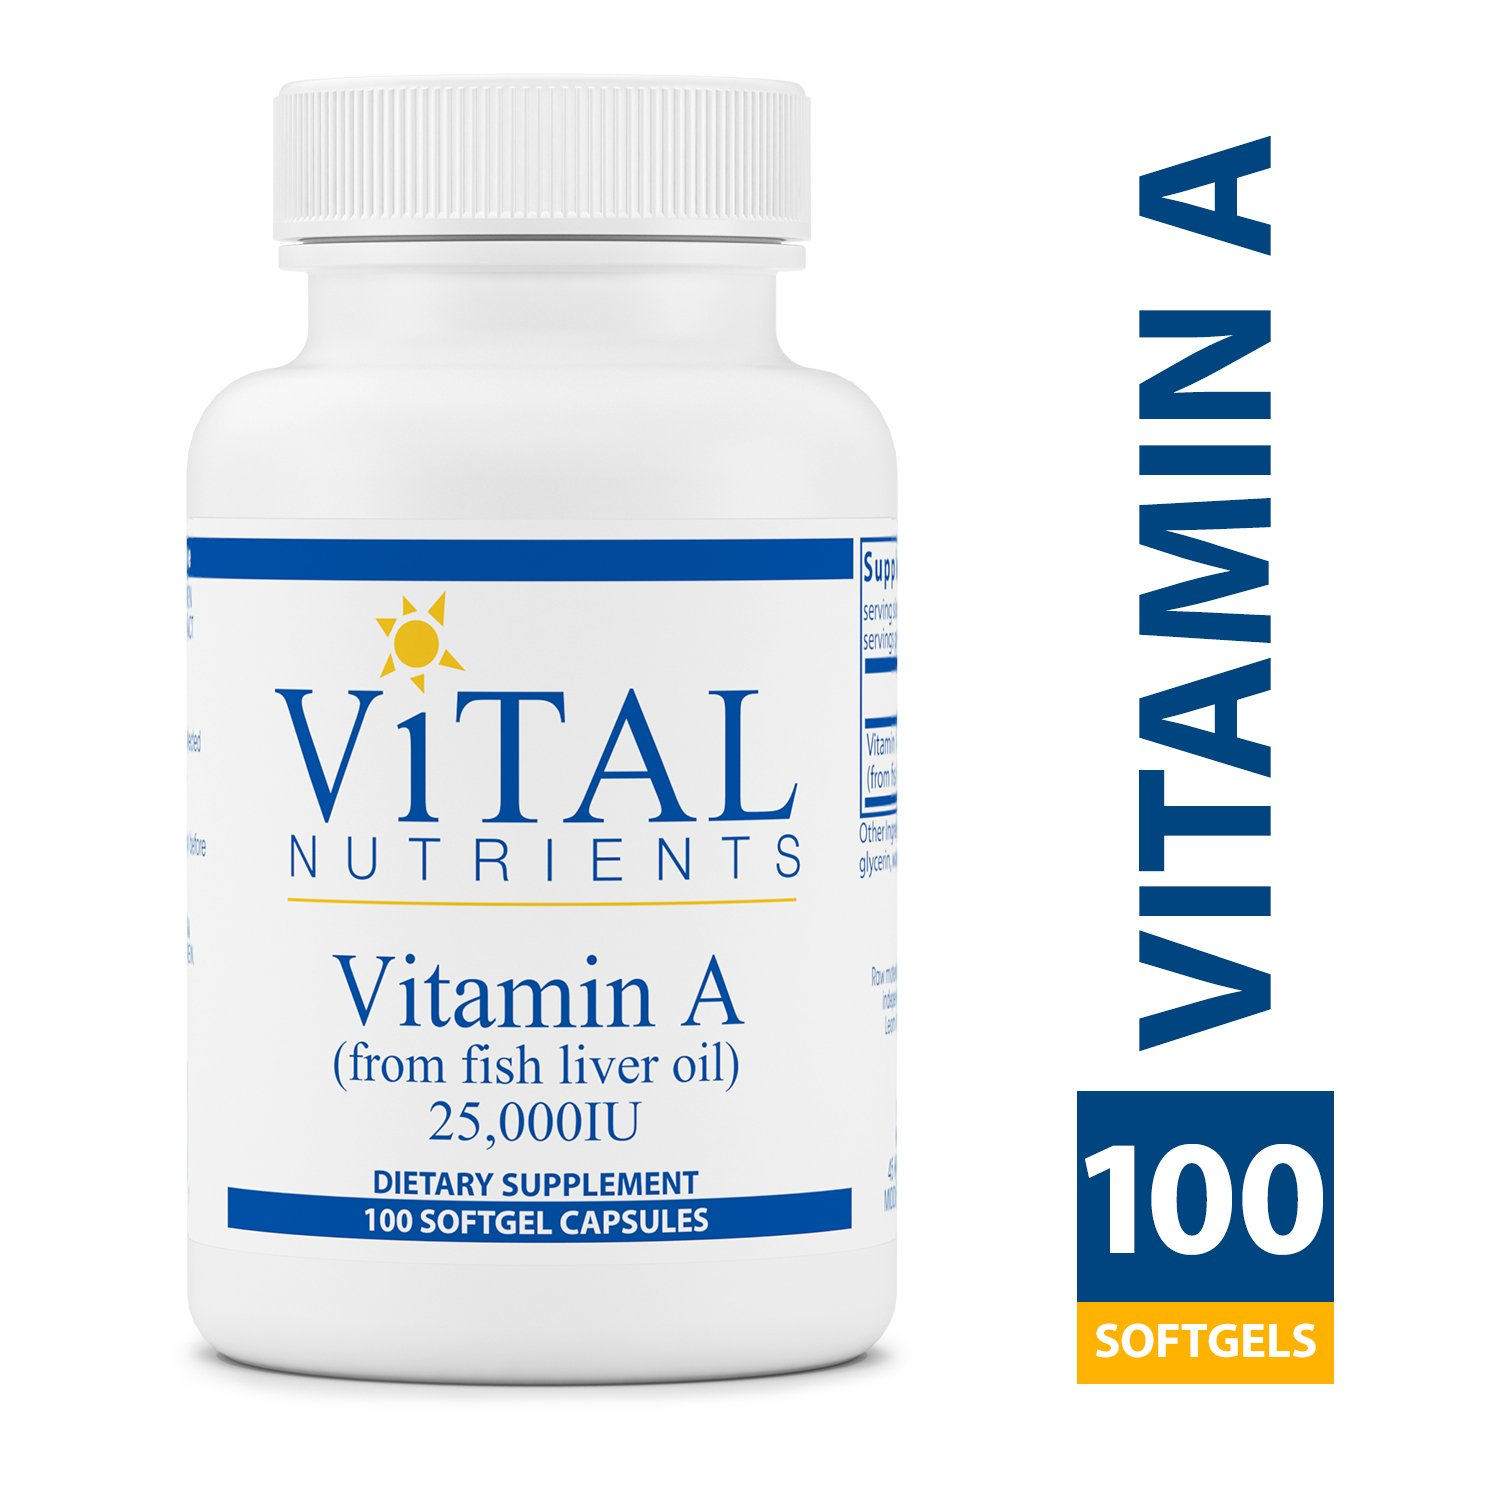 Vital Nutrients - Vitamin A (from Fish Liver Oil) 25,000 IU - Supports Immune Function and Vision - 100 Softgel Capsules per Bottle by Vital Nutrients